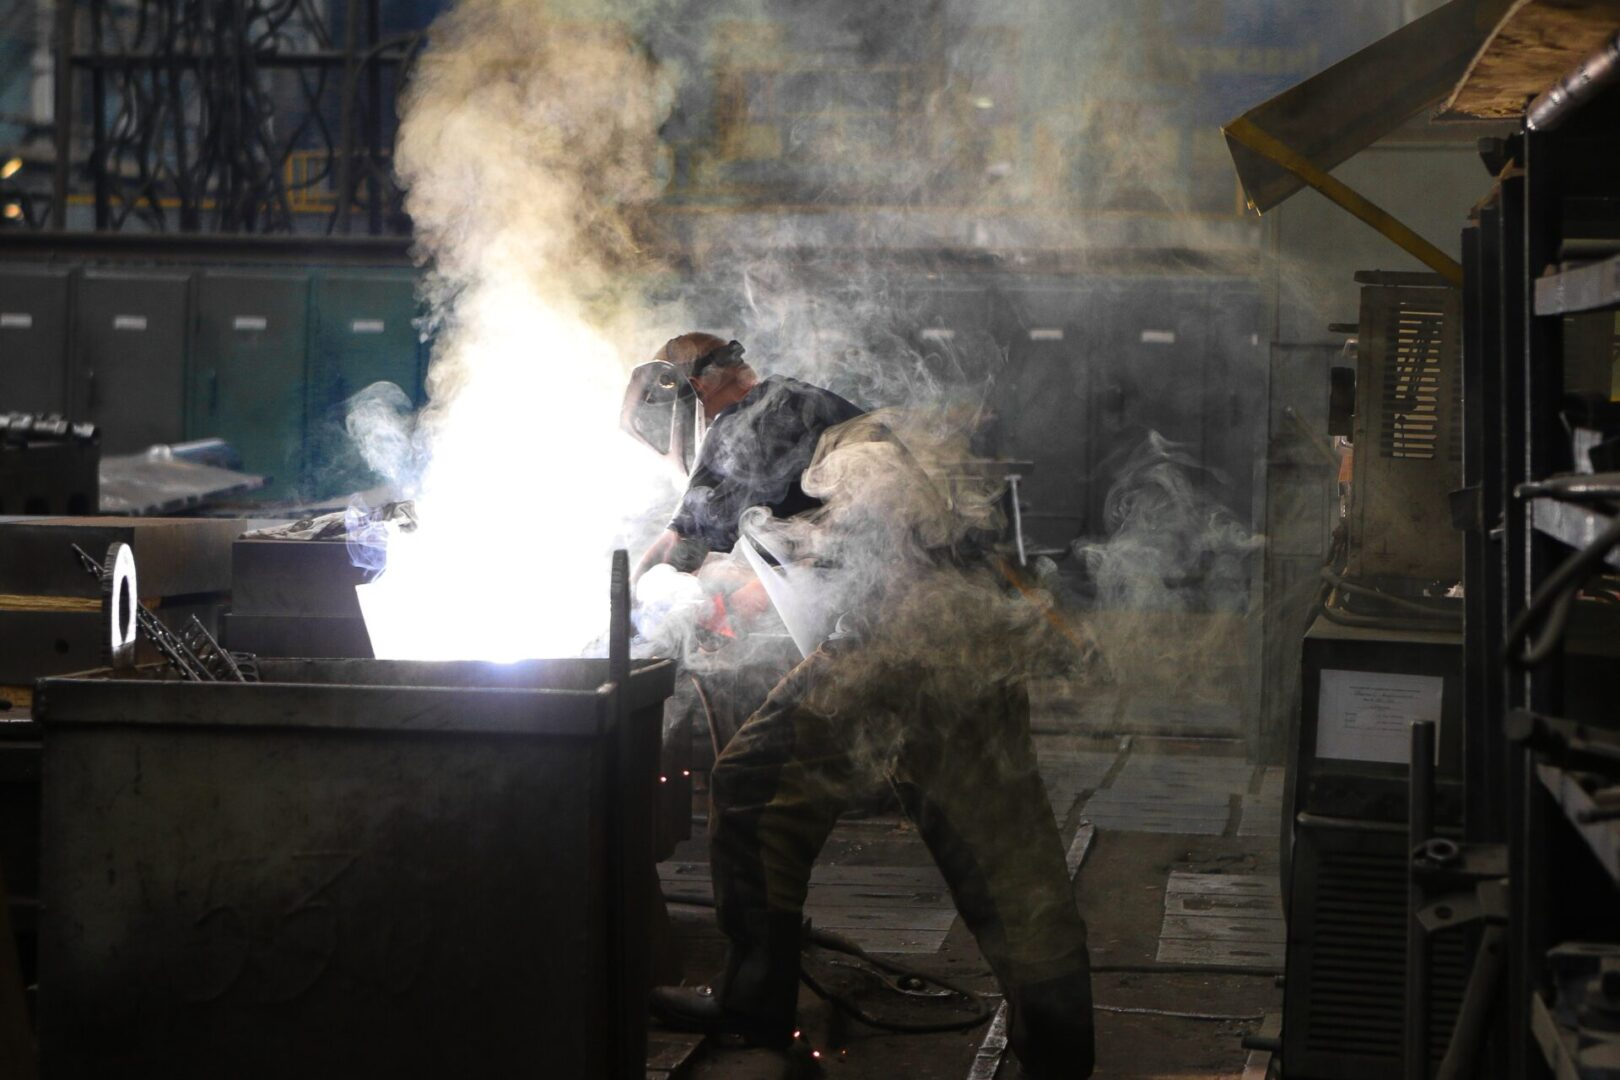 man-wearing-gray-shirt-and-welding-mask-covered-in-welding-2760344